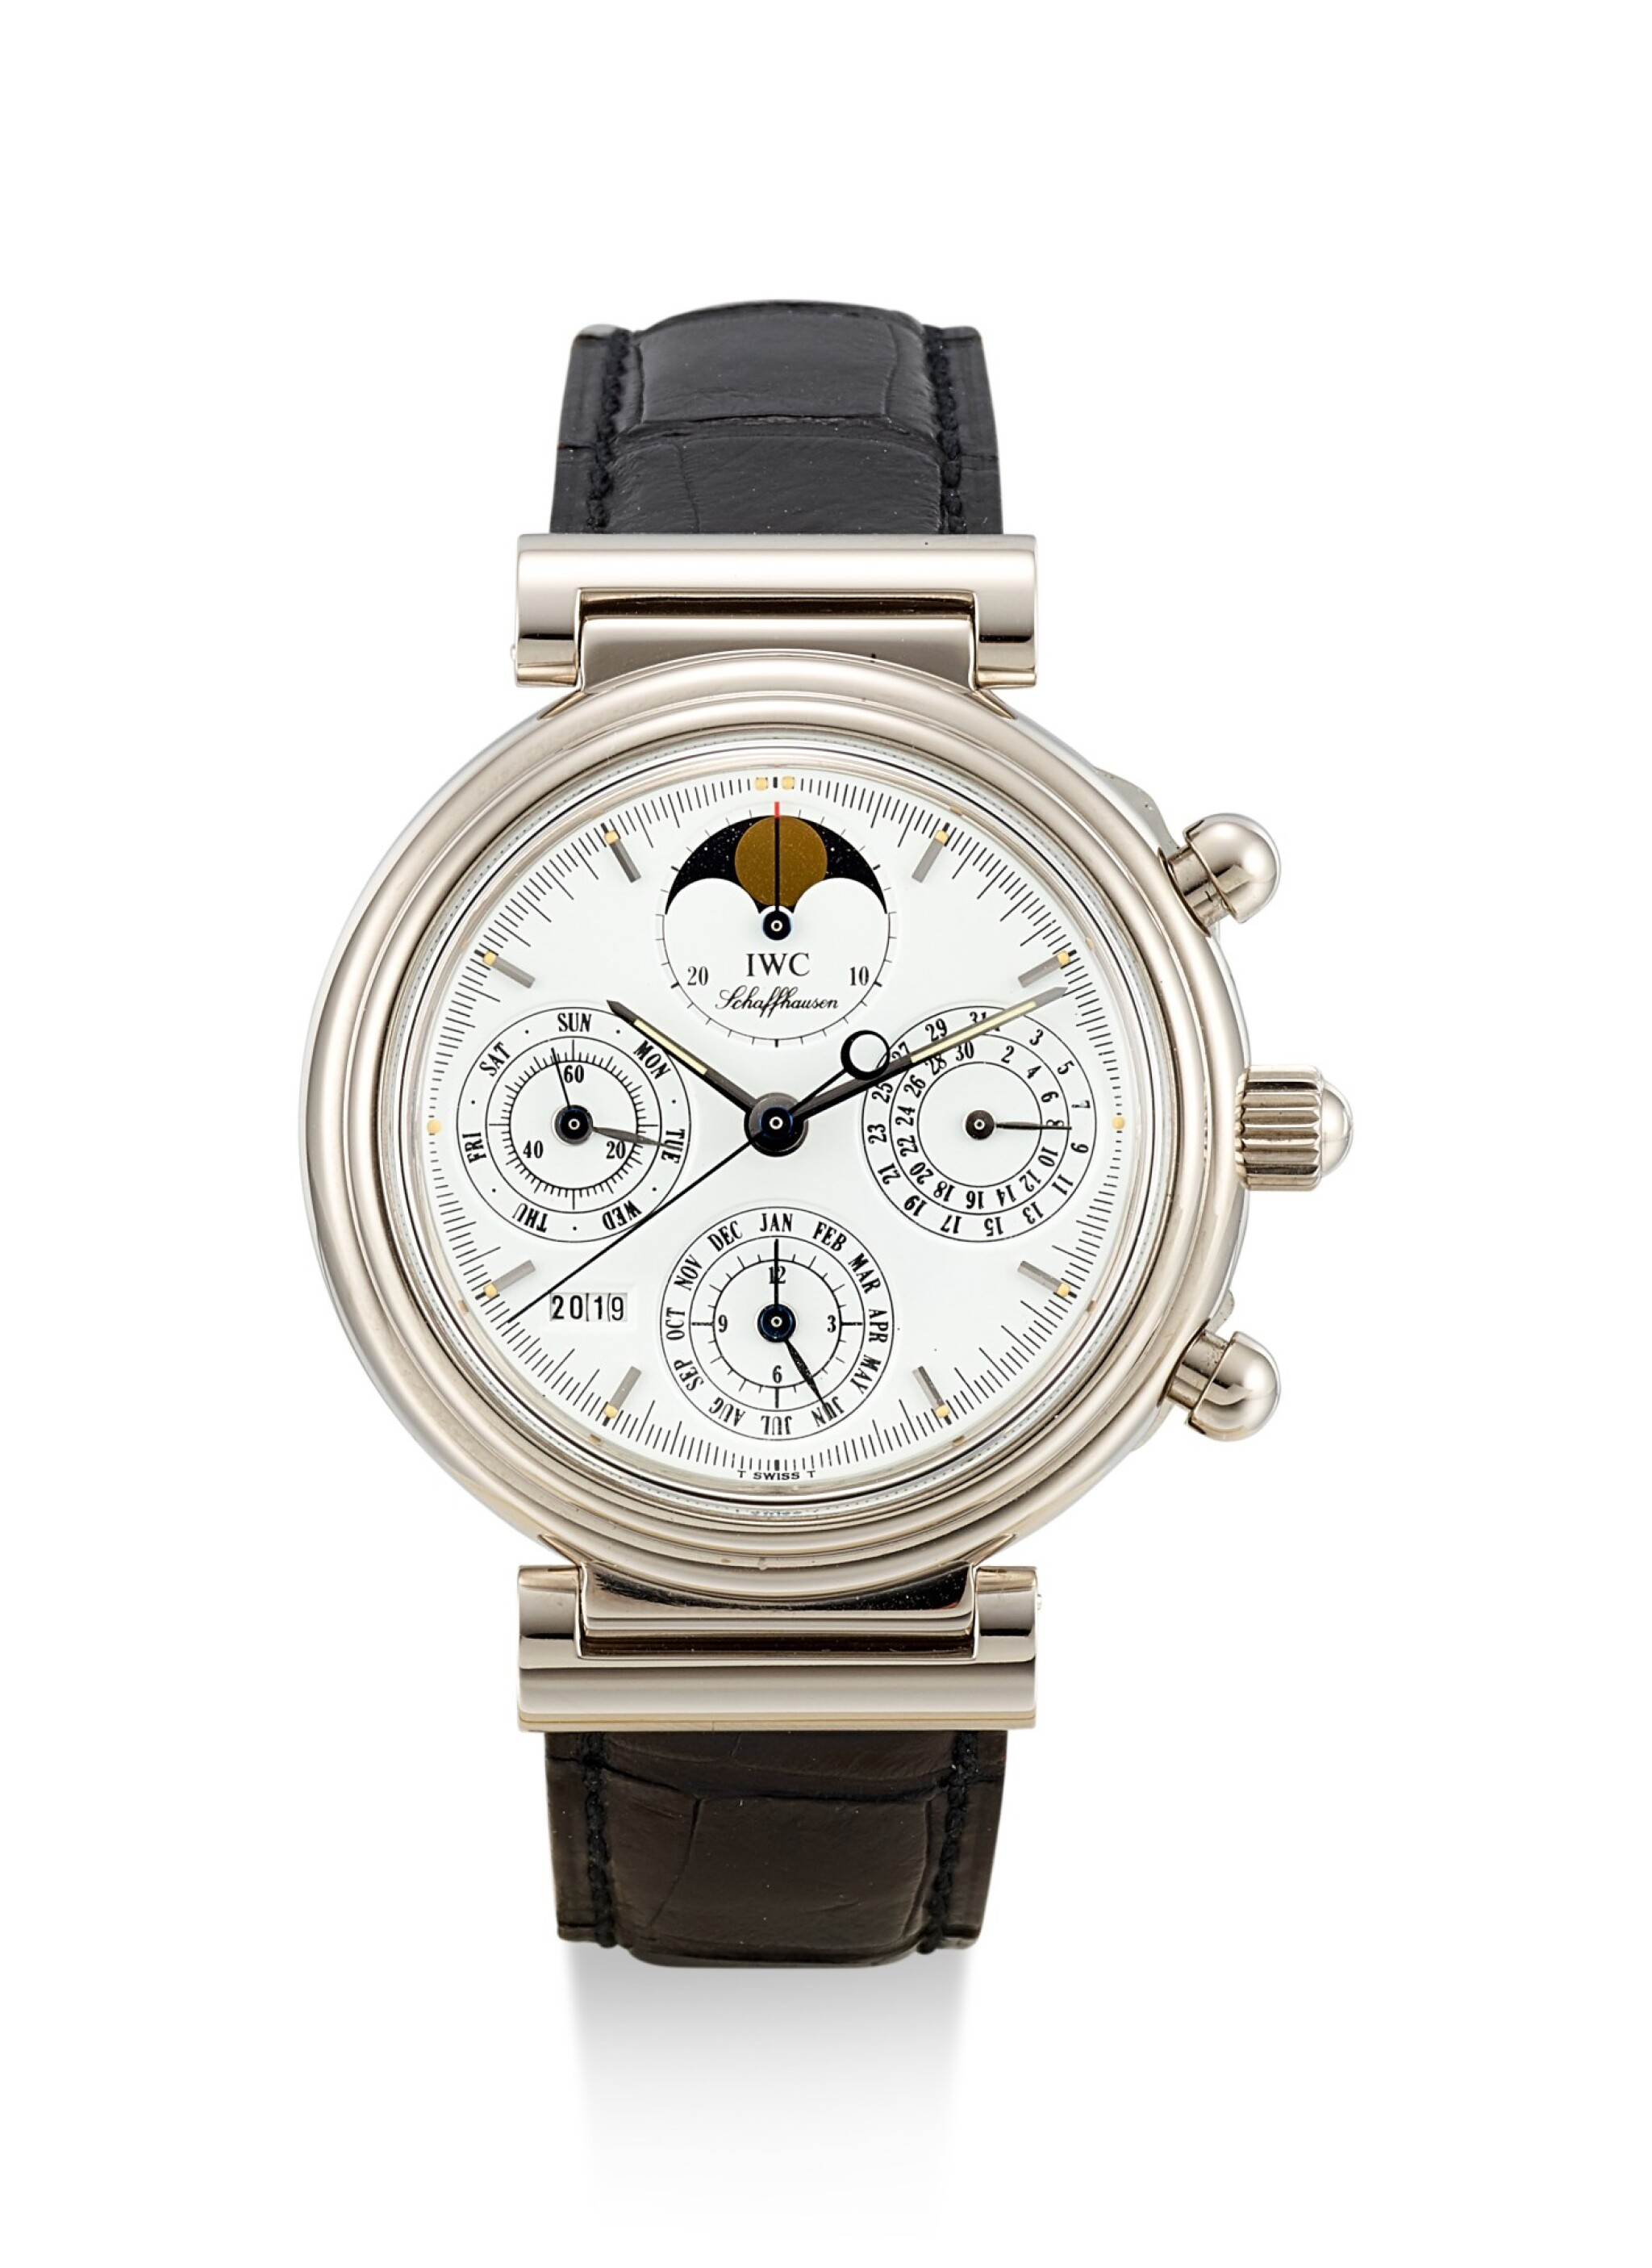 View 1 of Lot 8190. IWC | DA VINCI, A WHITE GOLD PERPETUAL CALENDAR CHRONOGRAPH WRISTWATCH WITH MOON PHASES, LEAP YEAR INDICATION AND DIGITAL YEAR DISPLAY, CIRCA 1990 .